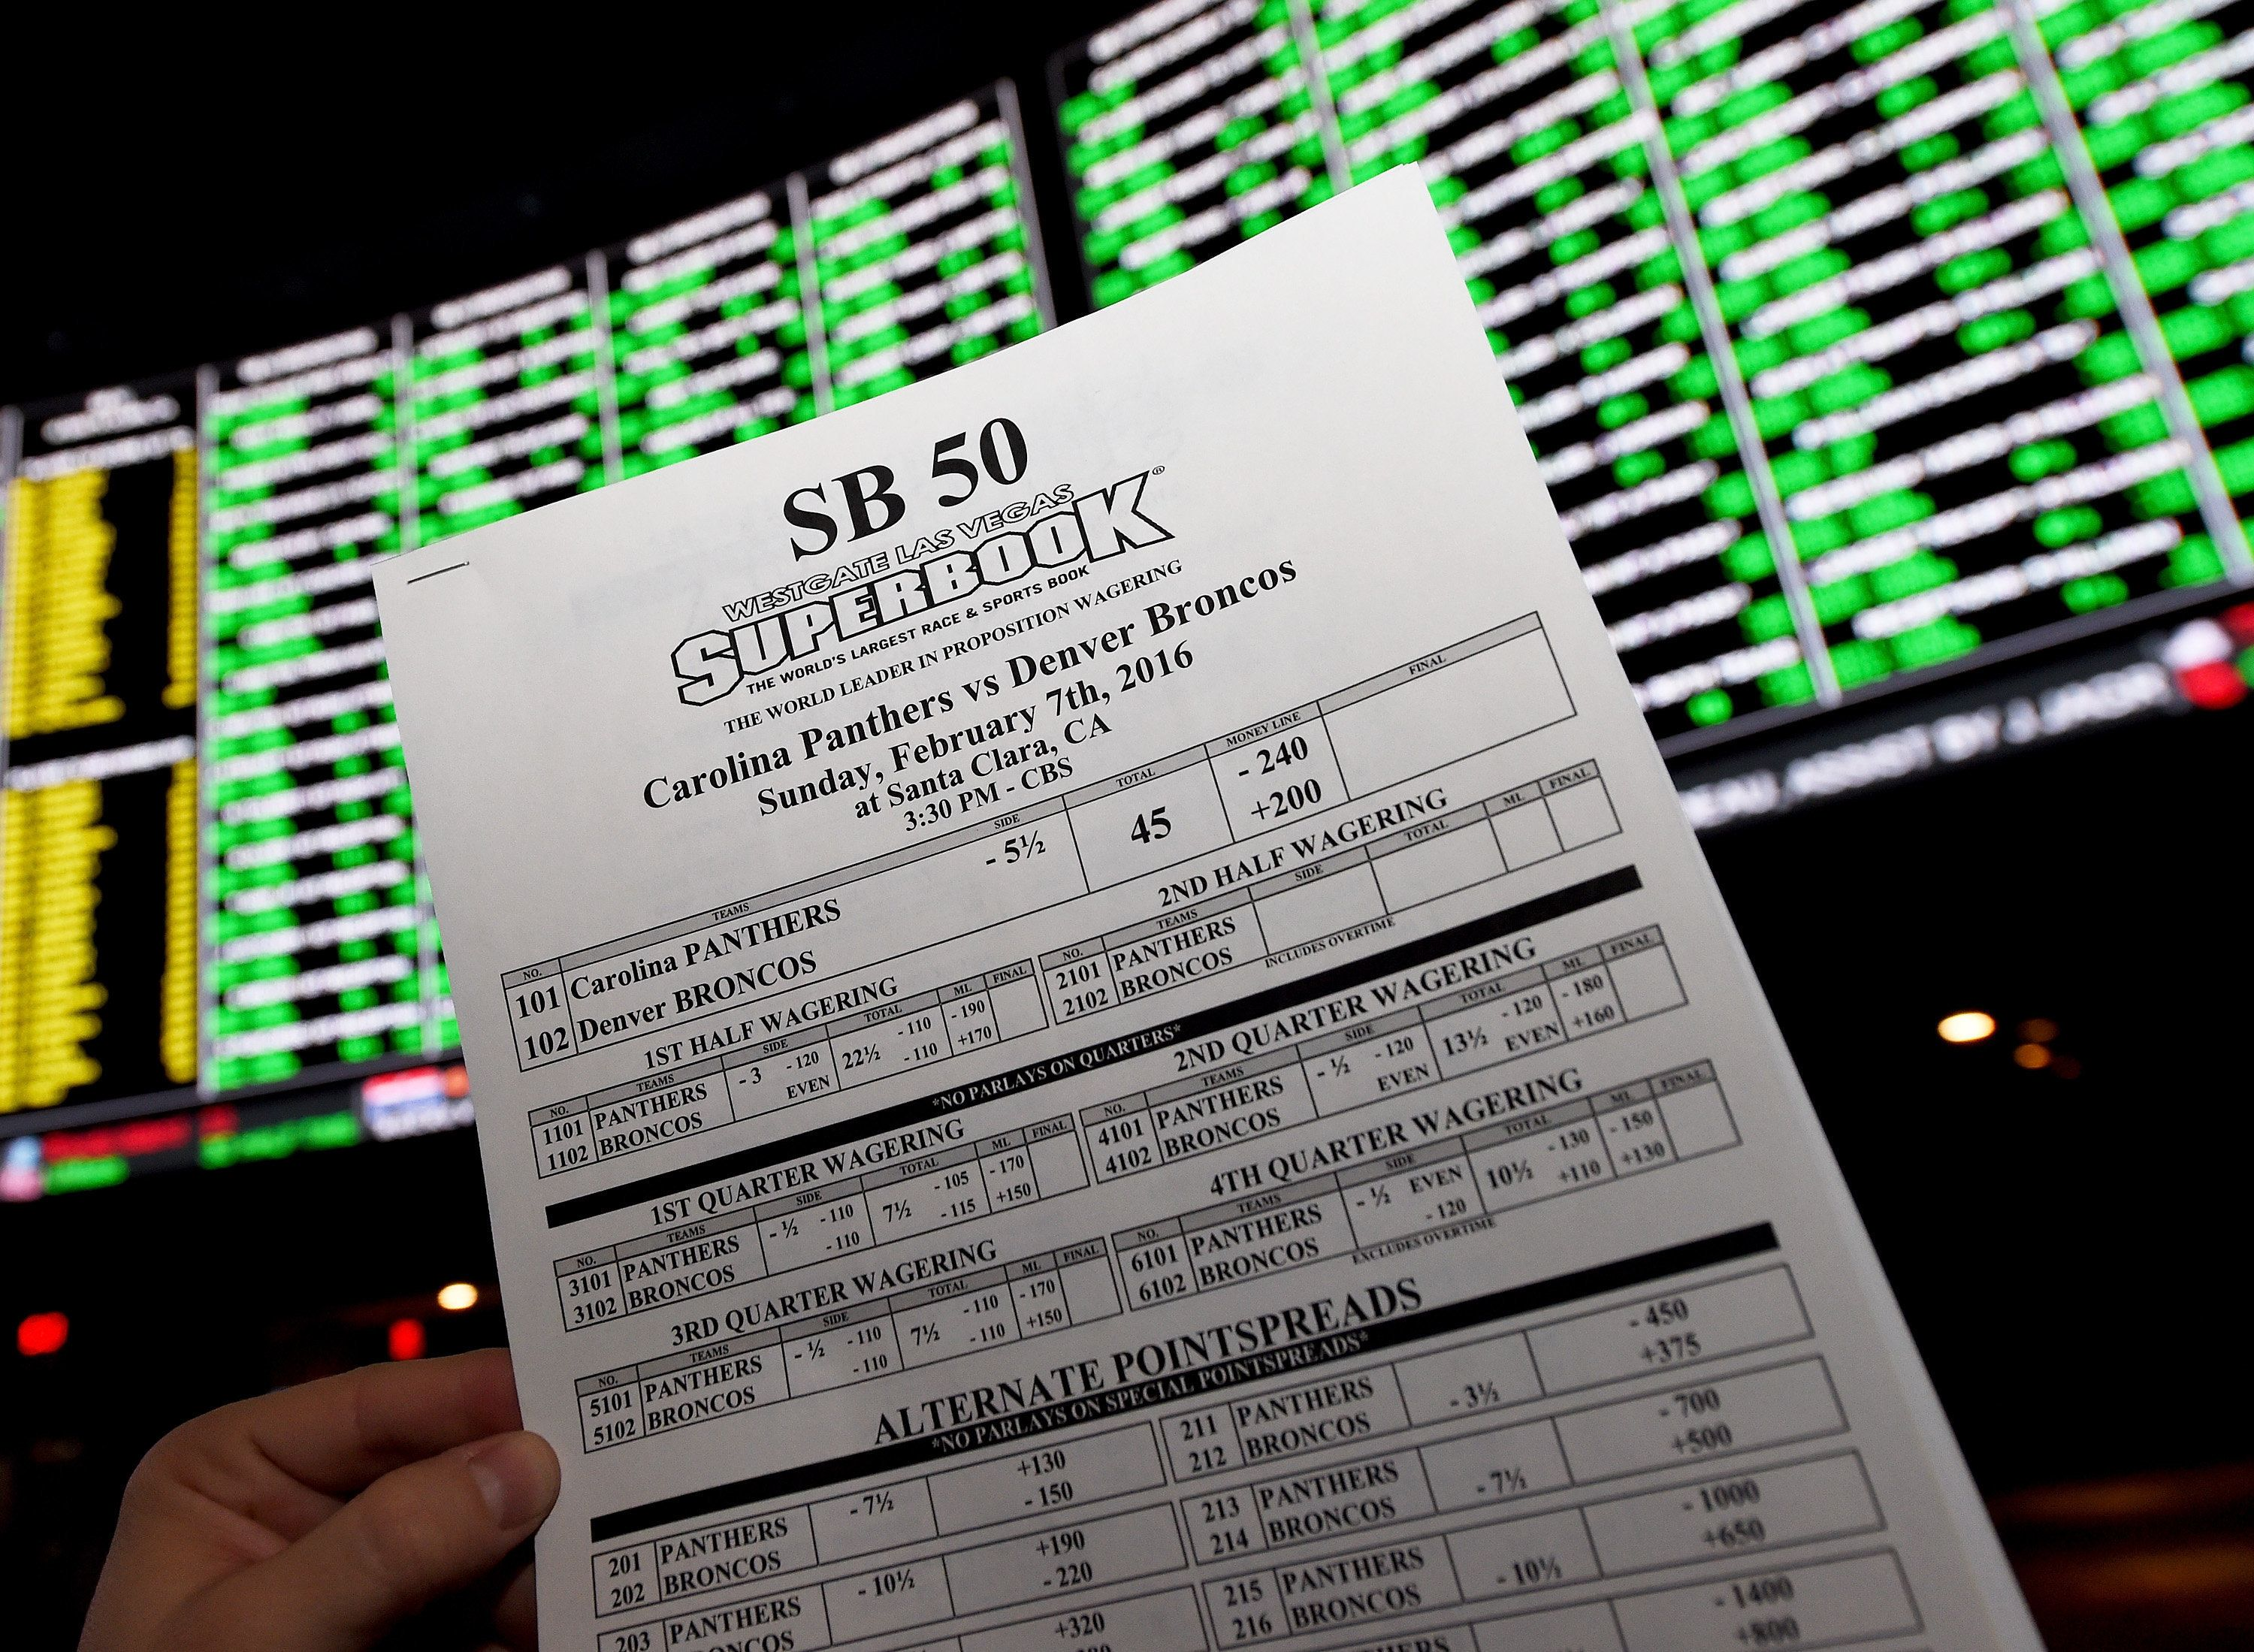 LAS VEGAS, NV - FEBRUARY 02:  A betting sheet for Super Bowl 50 between the Carolina Panthers and the Denver Broncos is displayed at the Race & Sports SuperBook at the Westgate Las Vegas Resort & Casino on February 2, 2016 in Las Vegas, Nevada. The newly renovated sports book, currently offering nearly 400 proposition bets for the Super Bowl, has the world's largest indoor LED video wall with 4,488 square feet of HD video screens measuring 240 feet wide and 20 feet tall.  (Photo Illustration by Ethan Miller/Getty Images)